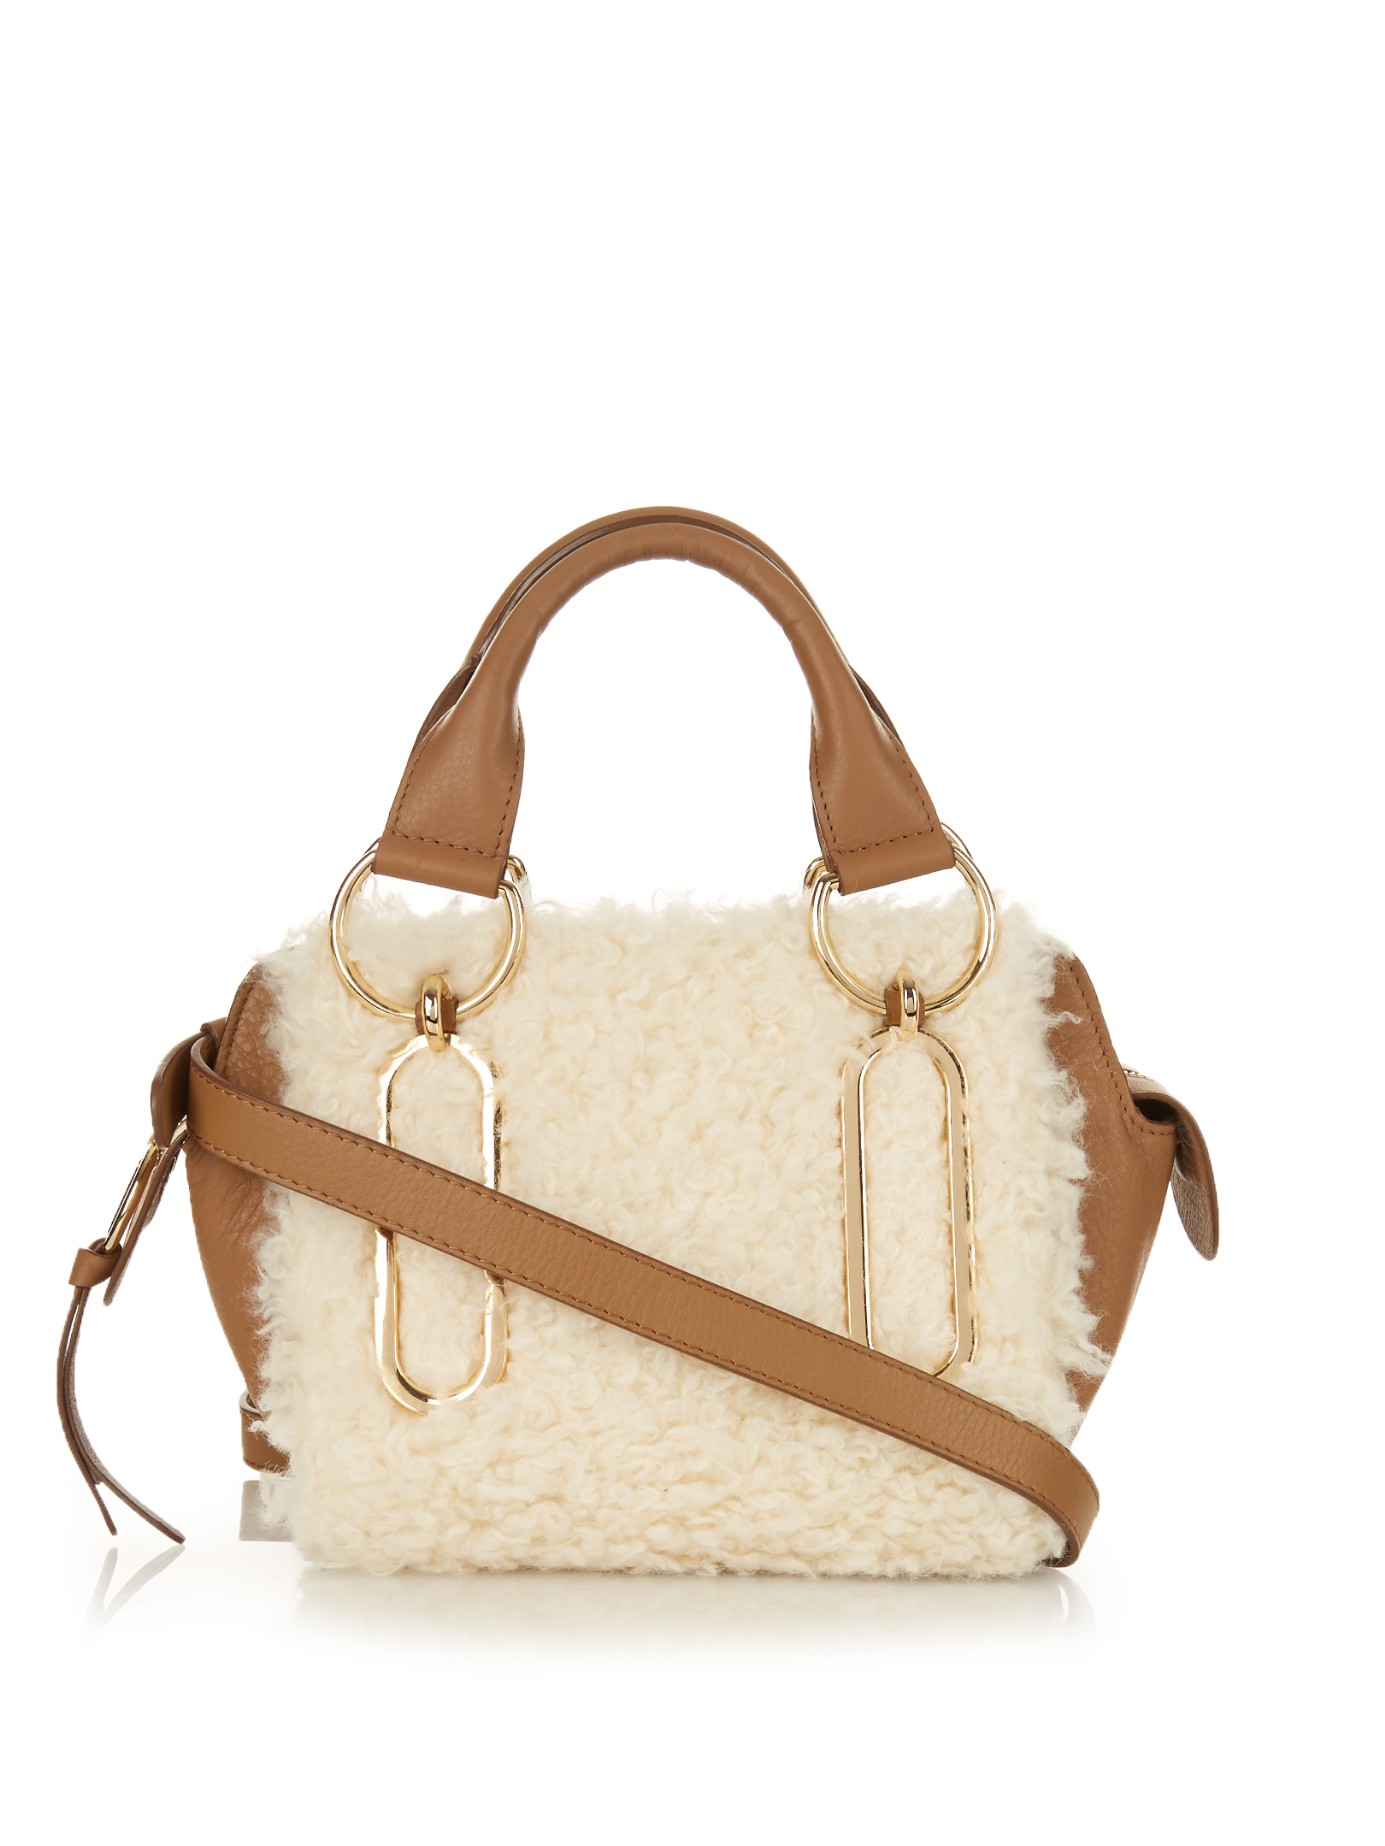 5aee3a5499ff Lyst - See By Chloé Paige Mini Leather and Shearling Shoulder Bag in ...